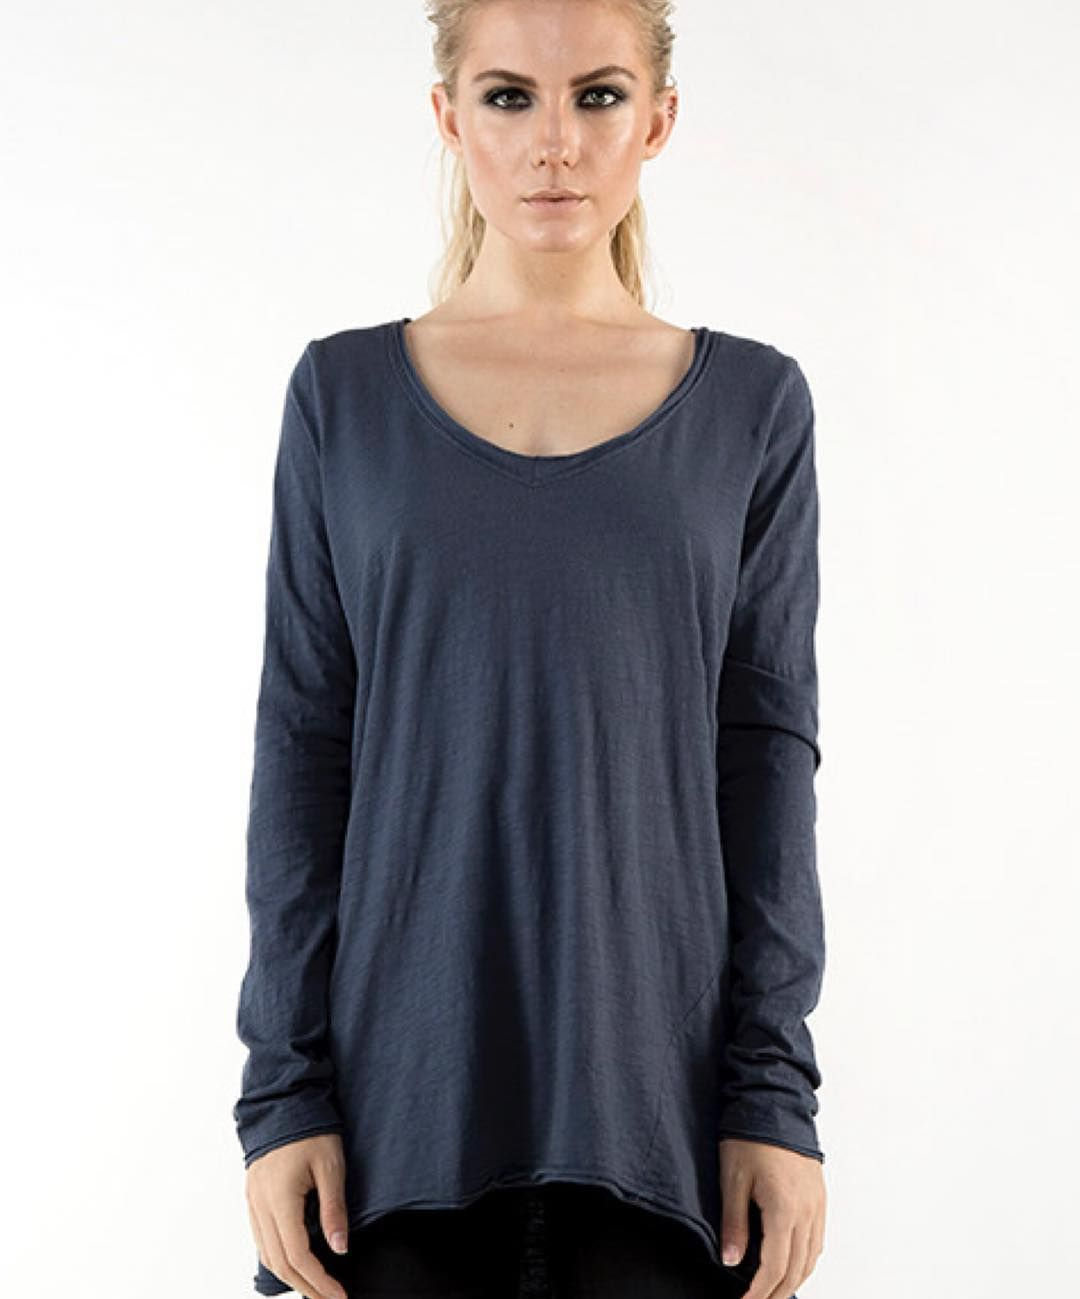 Oversized long sleeve tee || yes yes and yes it ticks all the boxes #basic #long sleeve #vneck #indigo #mixandco #shop3280 by mixandcoclothing